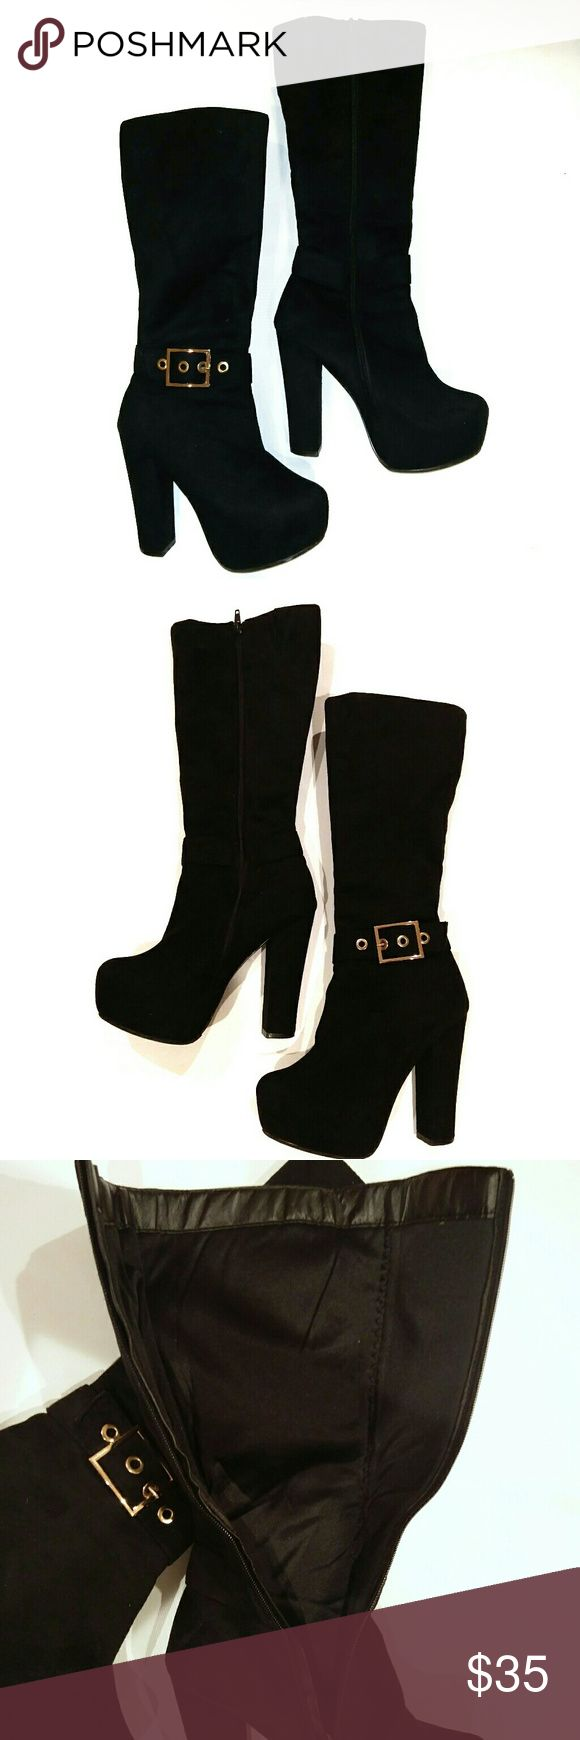 "SUEDE PLATFORM Tall Boots w/buckle sz.6 SUEDE PLATFORM Tall Boots with large buckle  sz.6 Zipper closure  5"" stock heel including 1. 5"" platform CALF CIRCUMFERENCE 14"" Shoes Heeled Boots"